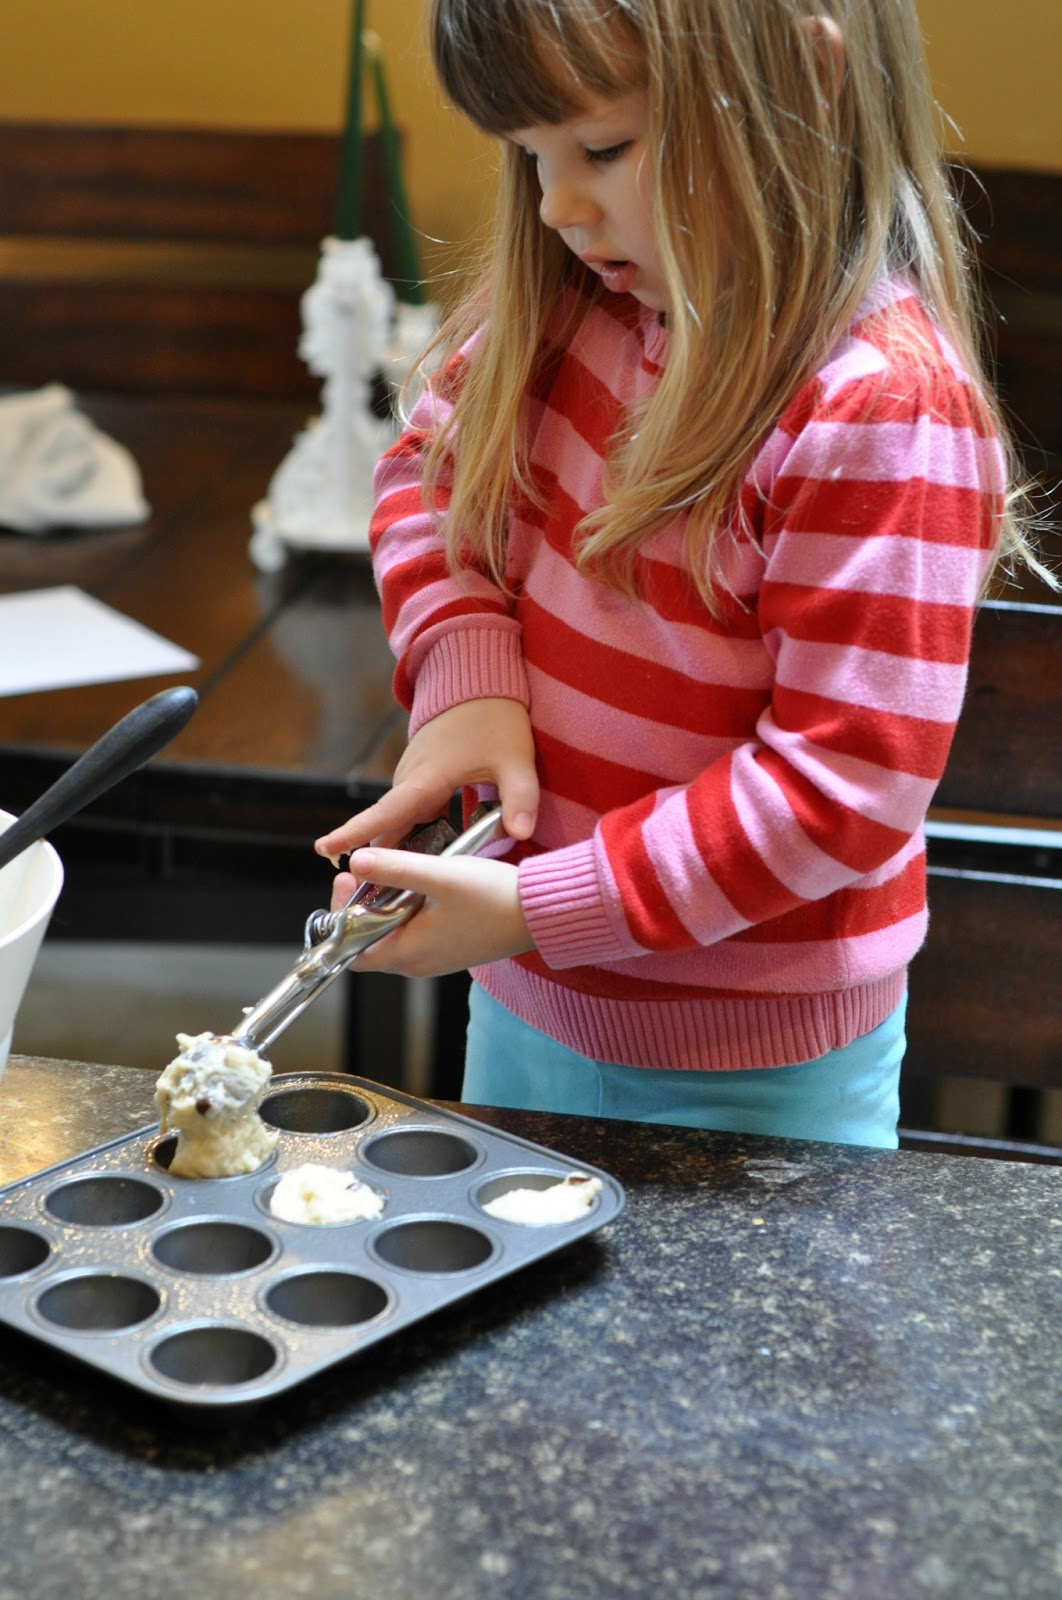 Baking With The Kids Joy And Chaos Suburble